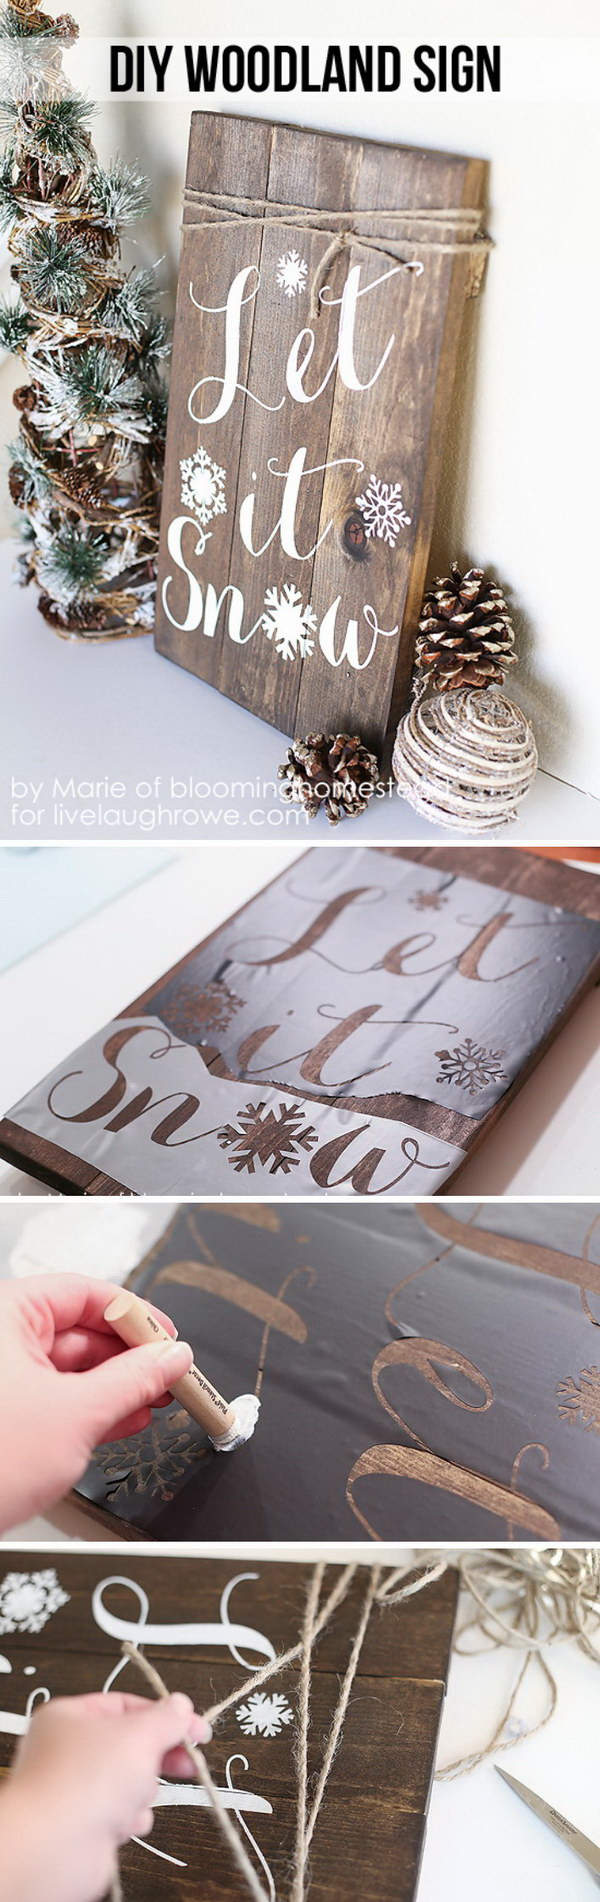 How to Make Wooden Snowflakes recommend